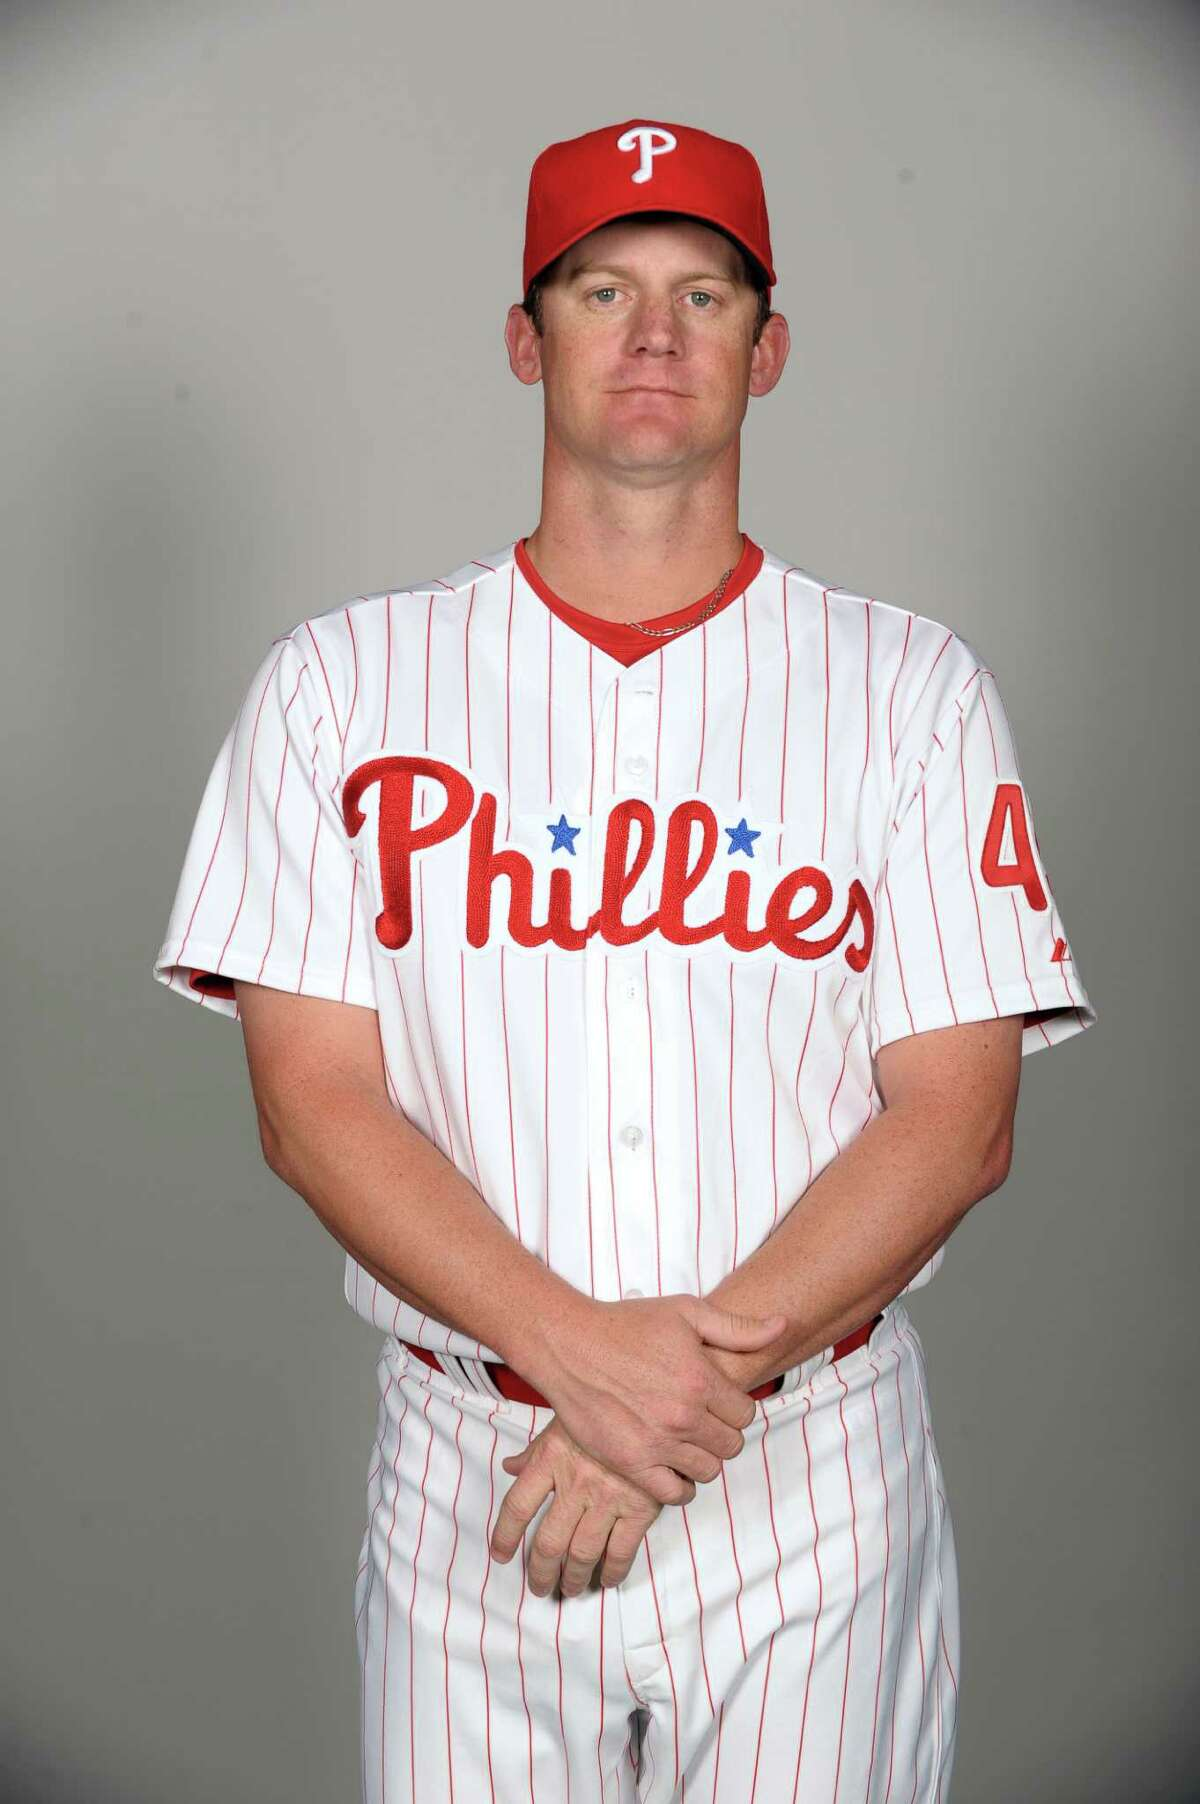 CLEARWATER, FL - FEBRUARY 22: Roy Oswalt #44 of the Philadelphia Phillies poses during Photo Day on Tuesday, February 22, 2011, at Bright House Field in Clearwater, Florida. (Photo by Tony Firriolo/MLB Photos via Getty Images) *** Local Caption ***